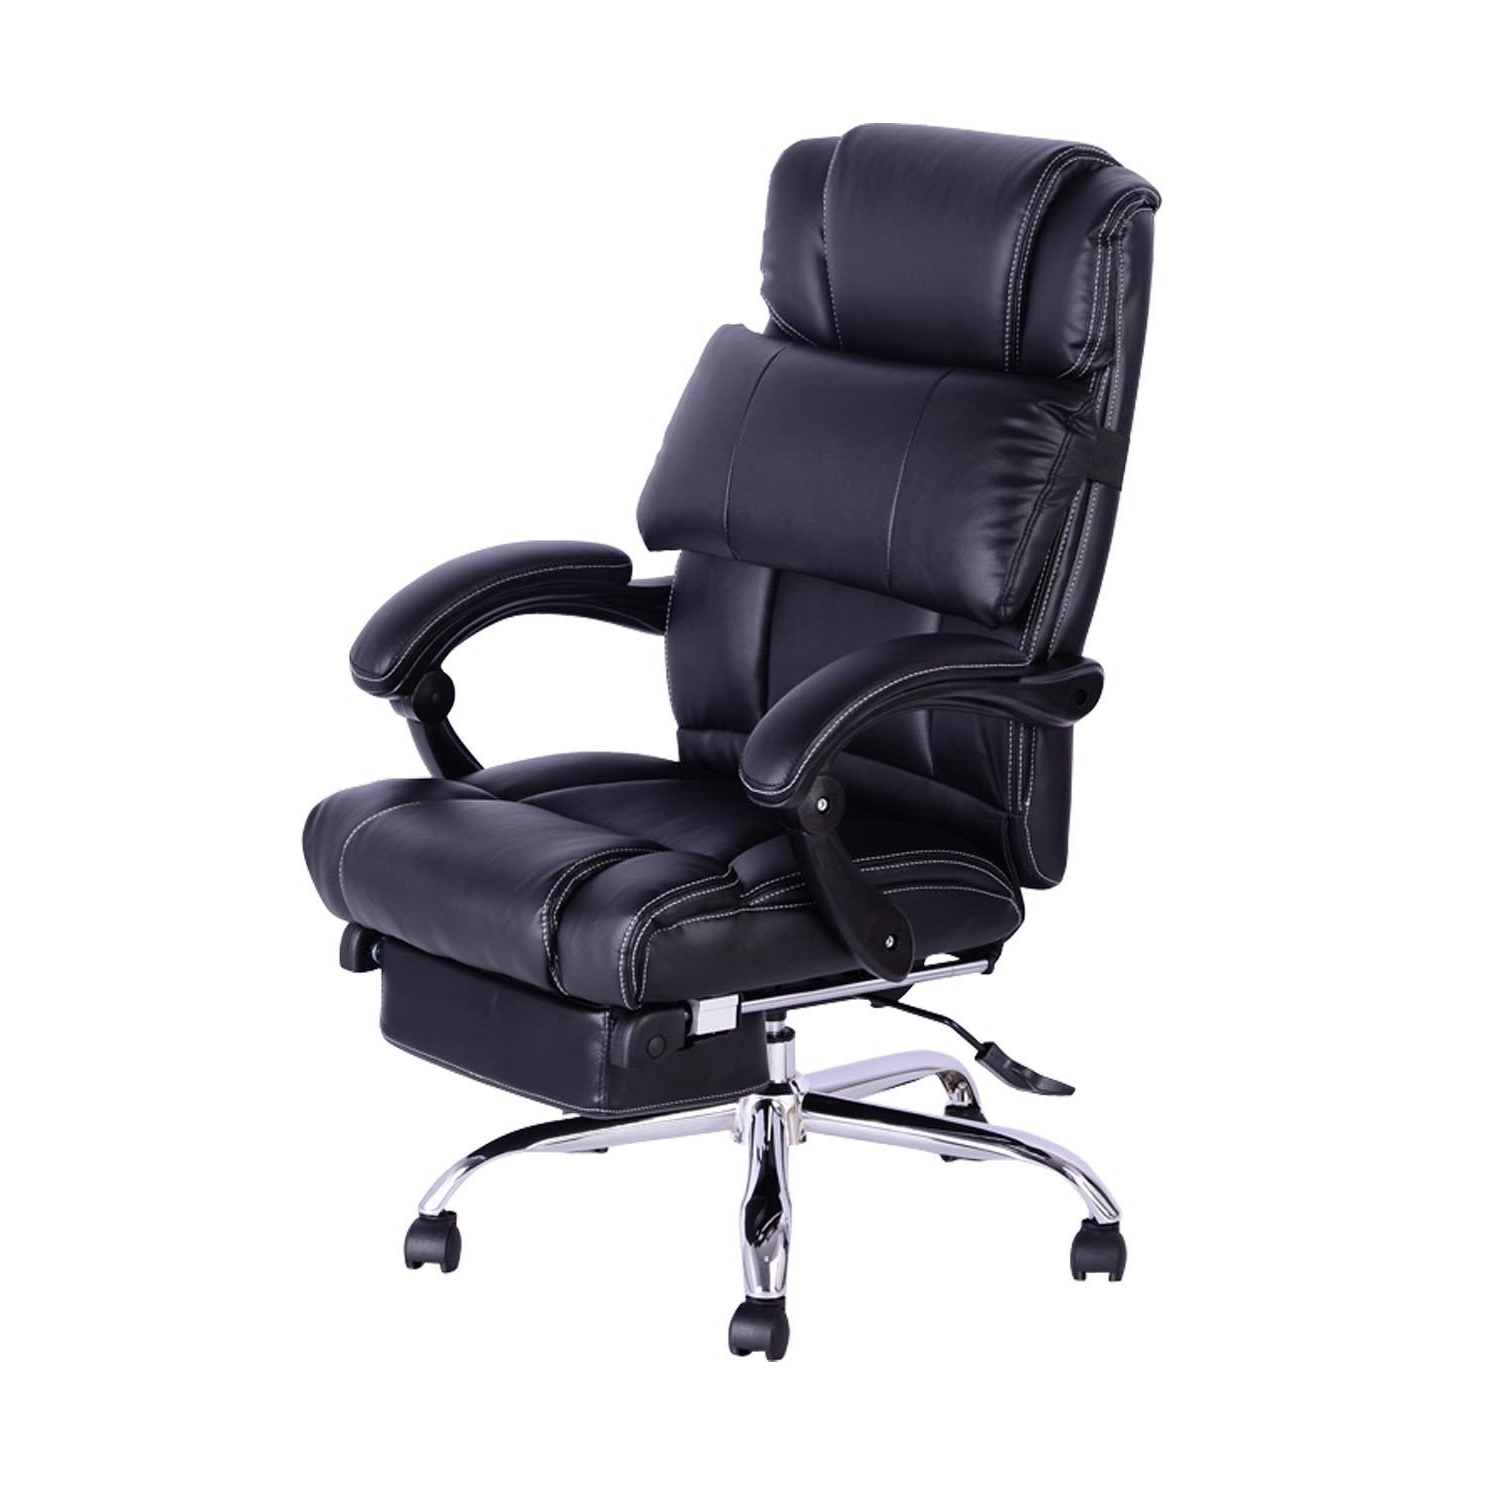 Homcom Executive Reclining Office Chair W/ Footrest – Black (View 12 of 20)